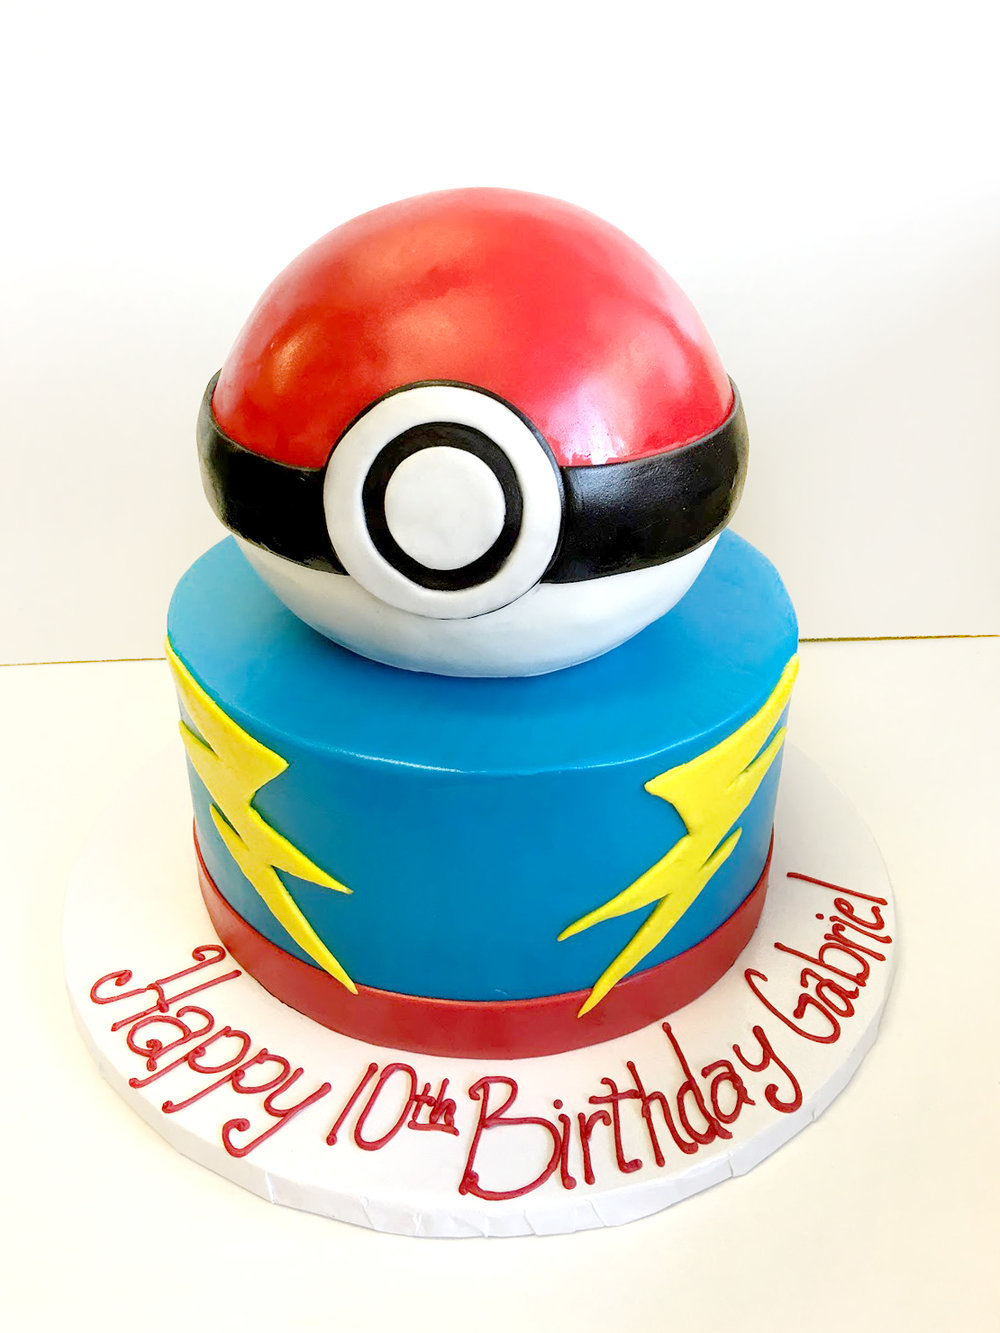 pokeball sculpted cake.jpg